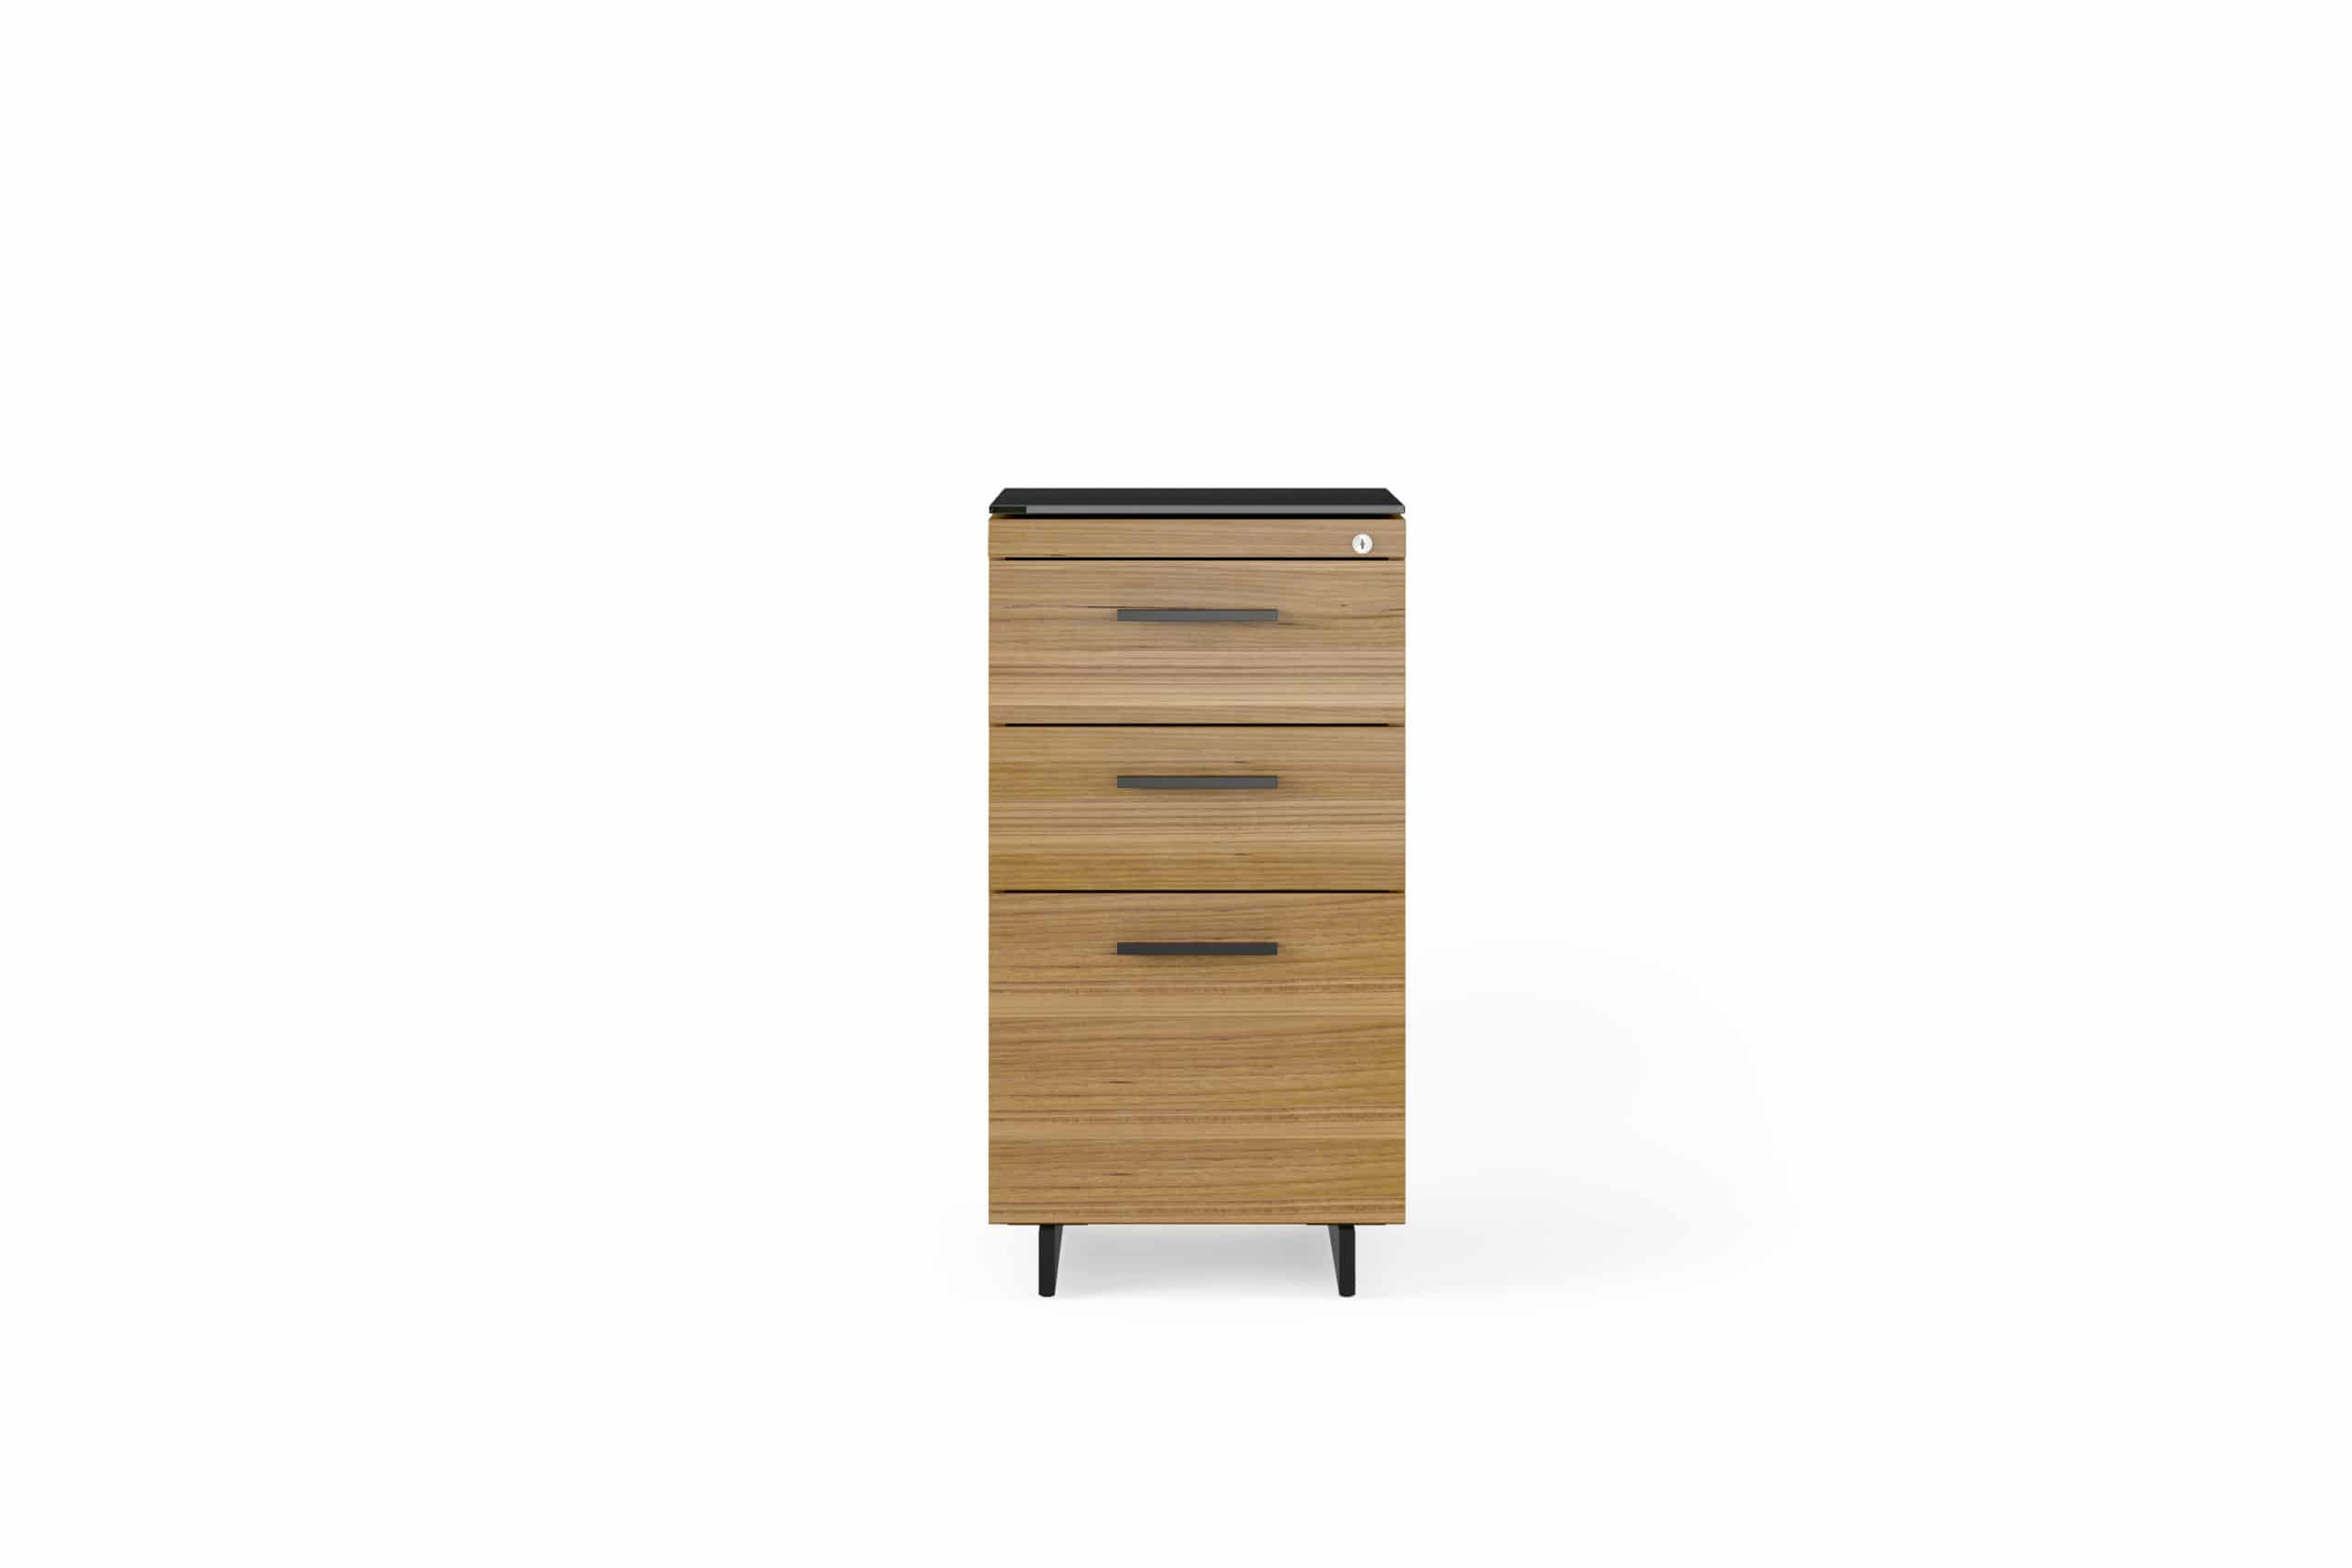 Sequel 20 6114 3 Drawer File & Storage Cabinet | BDI Furniture